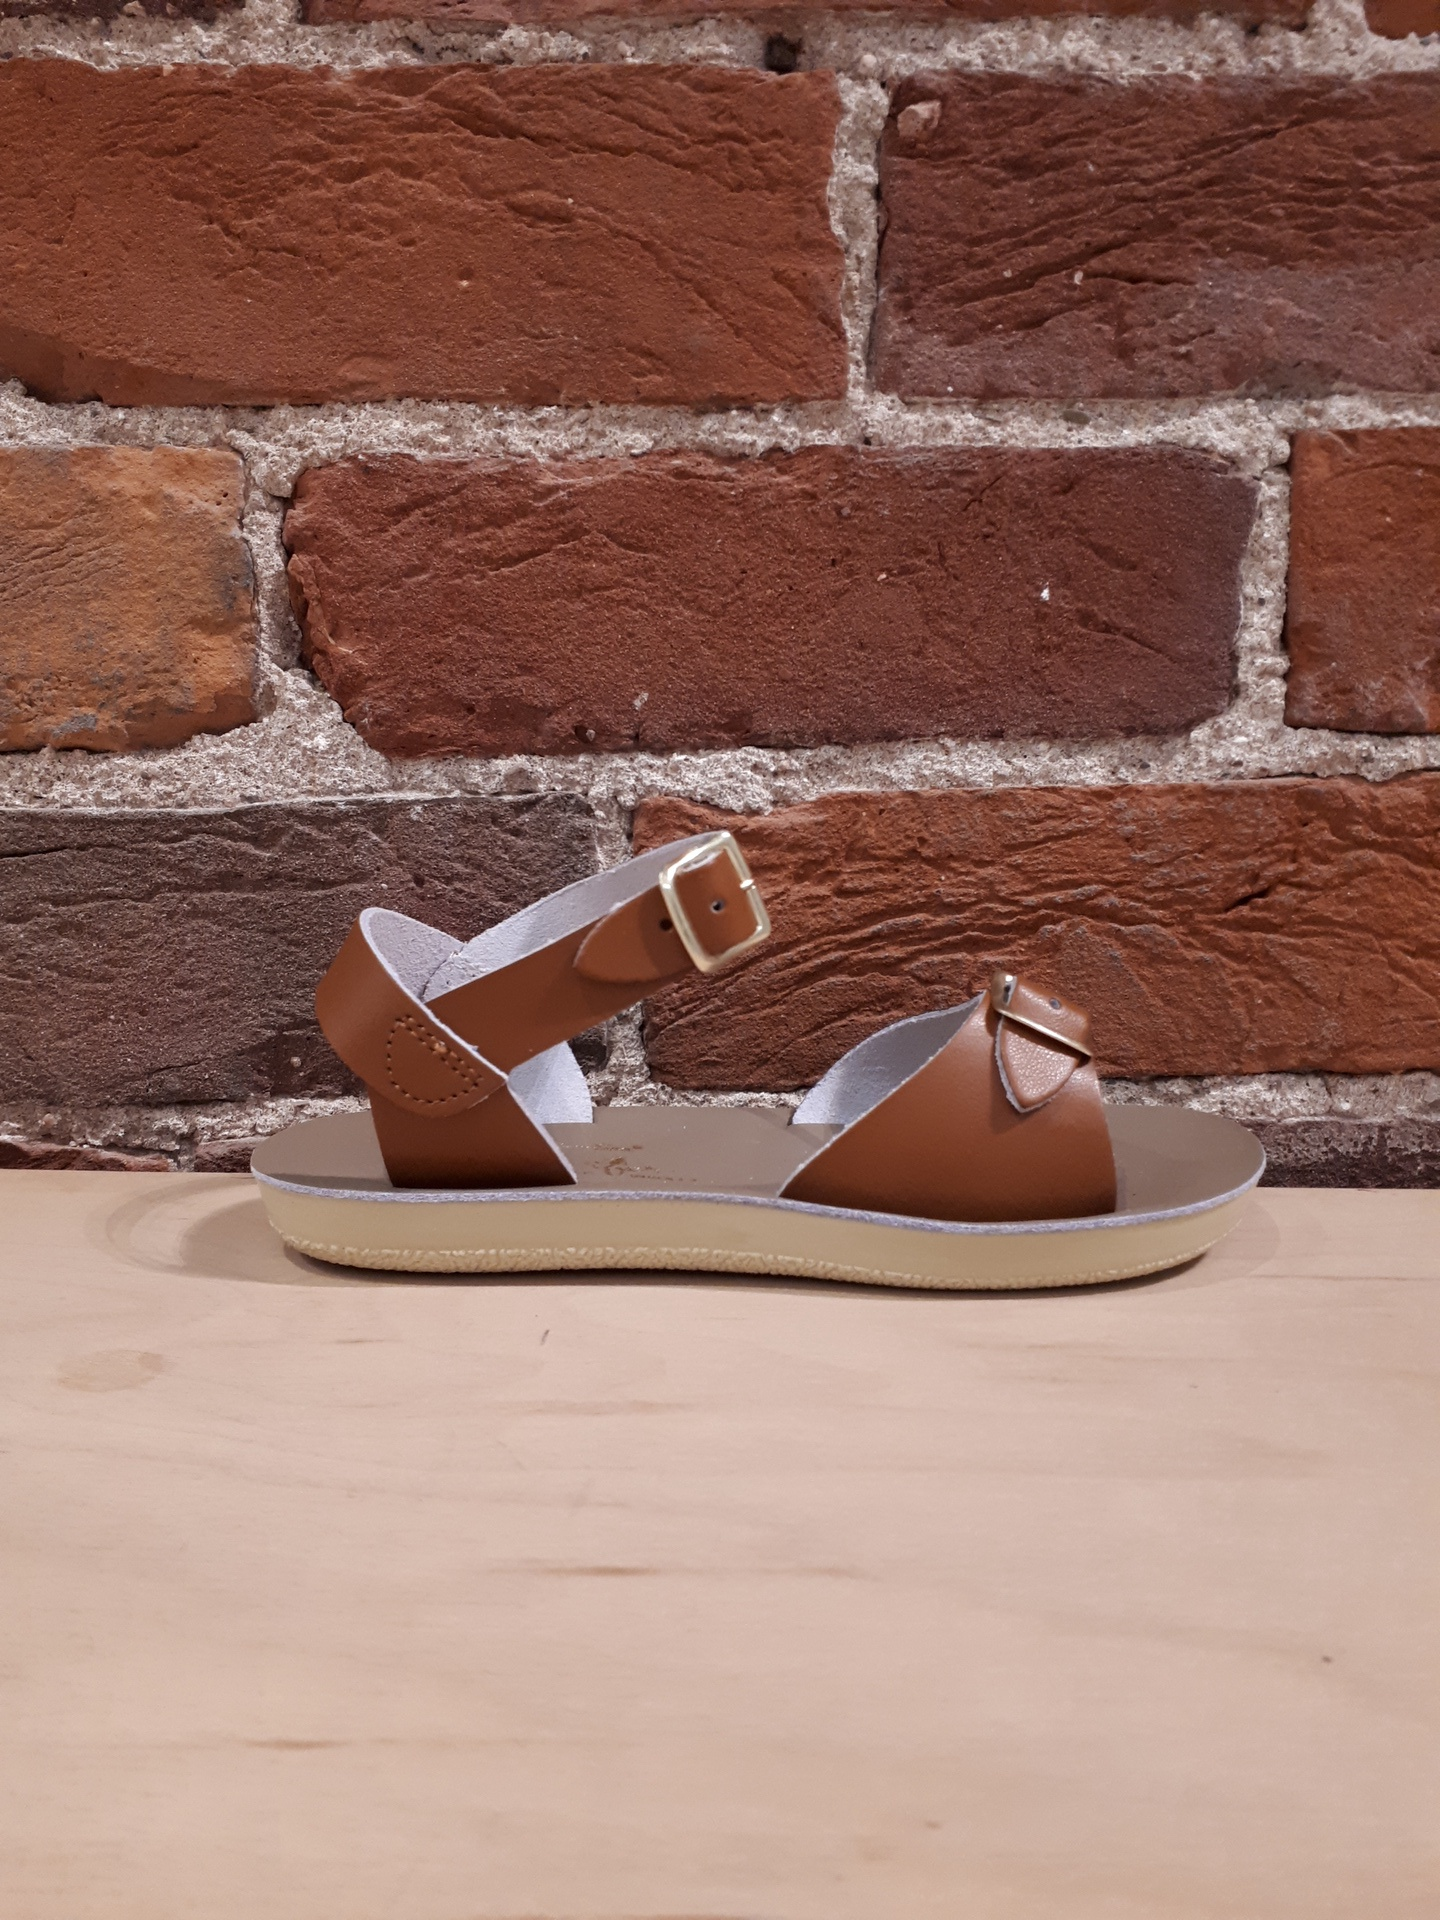 SALT WATER SANDALS - SURFER IN TAN (13-3)